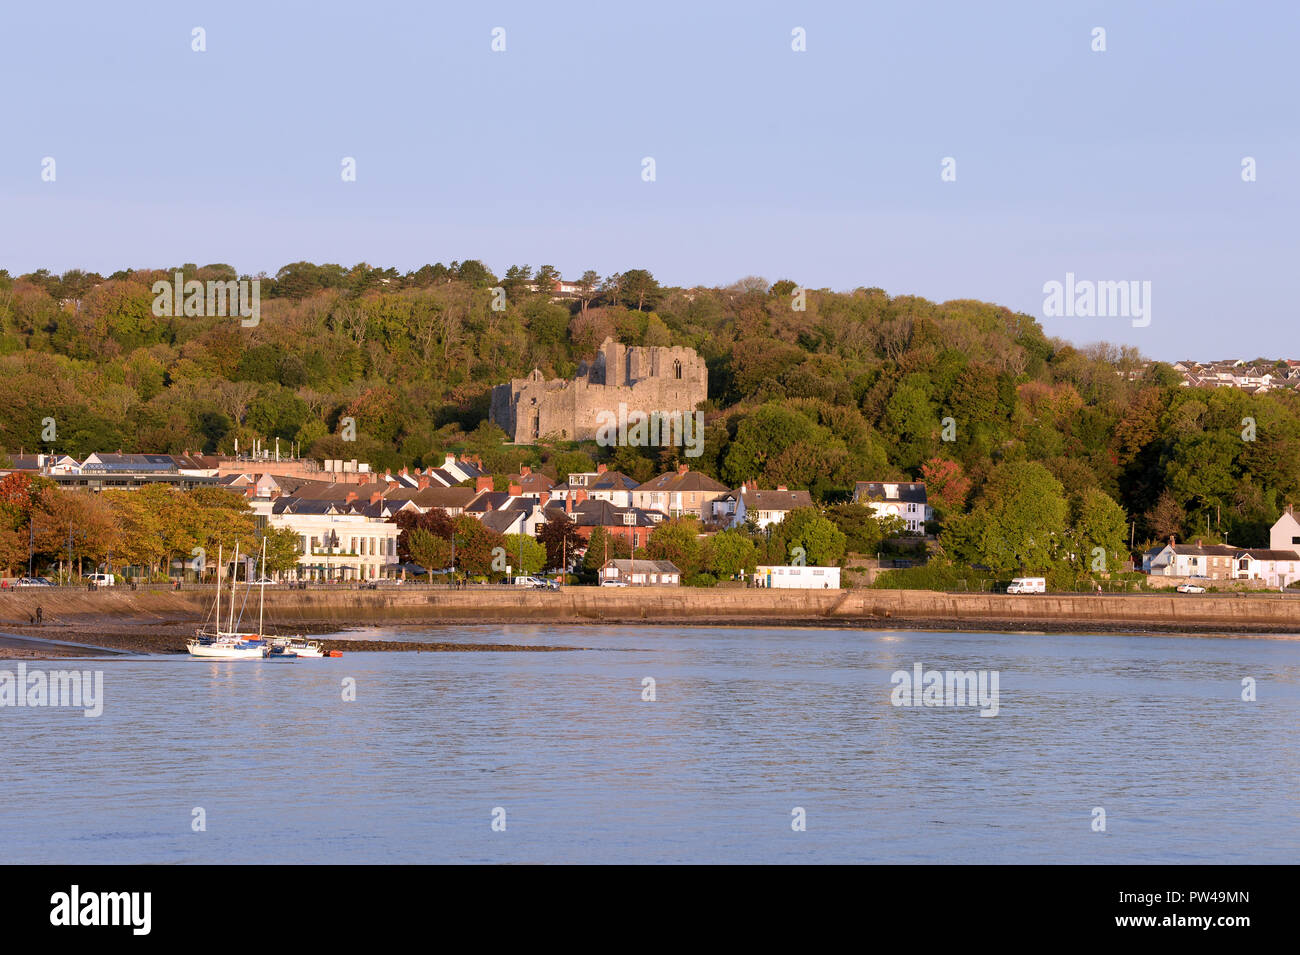 Autumn in The Mumbles. Several yachts await removal from the water for the Winter. The ruins of Oystermouth castle preside over this seaside village. Stock Photo